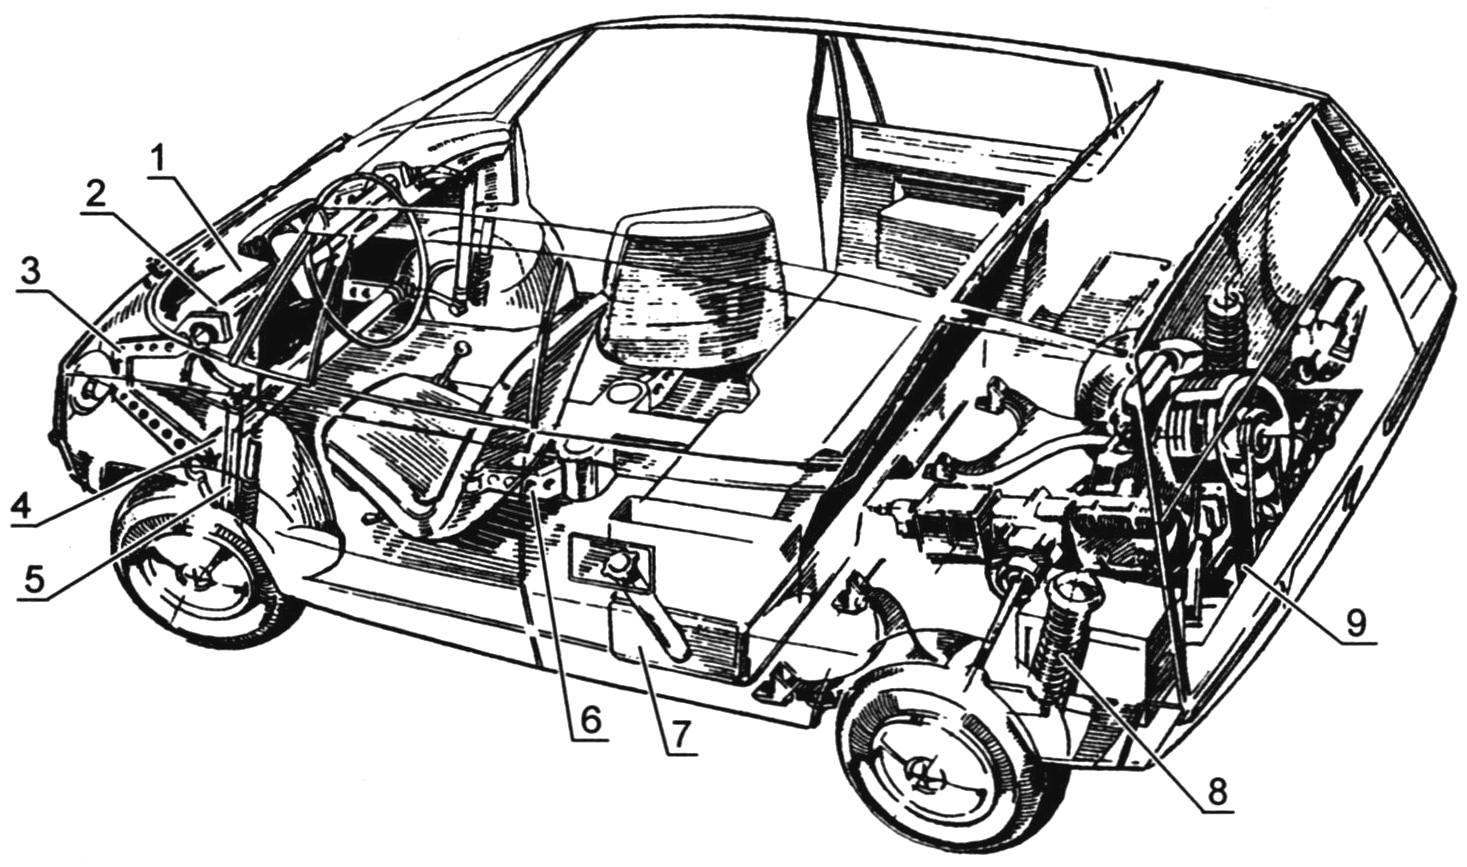 The layout of the car